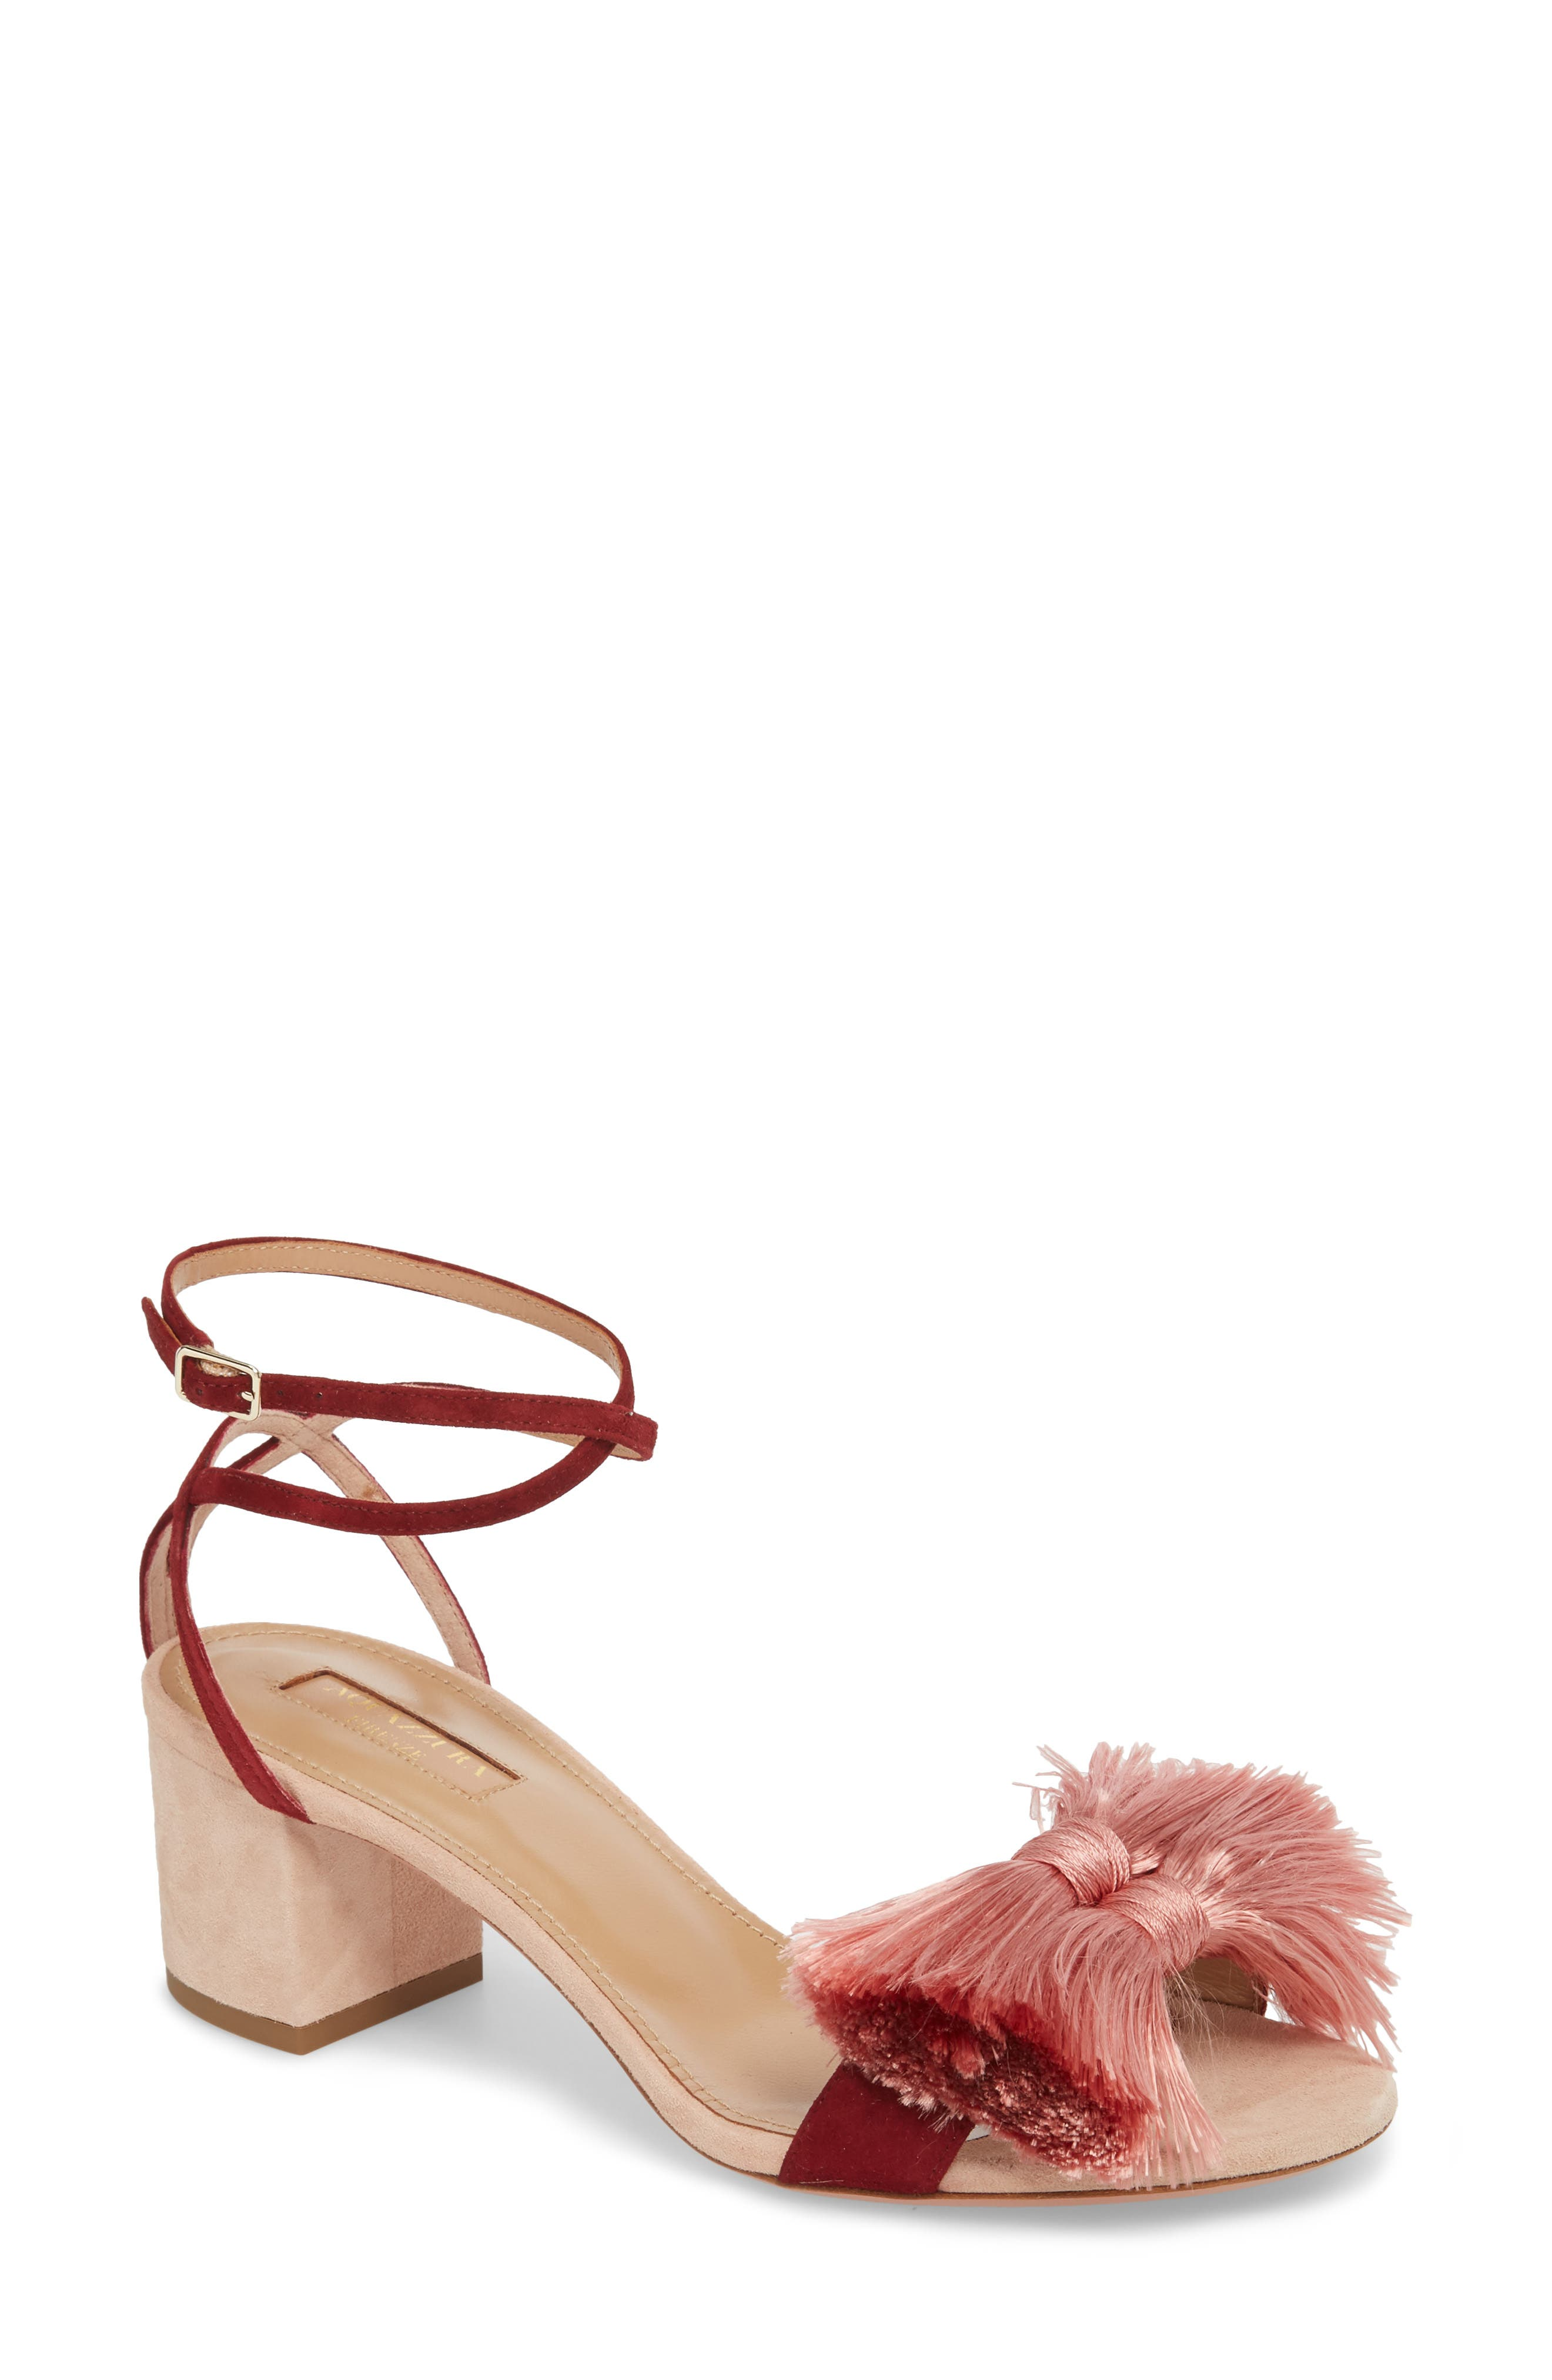 Lotus Blossom Sandal,                         Main,                         color, 601